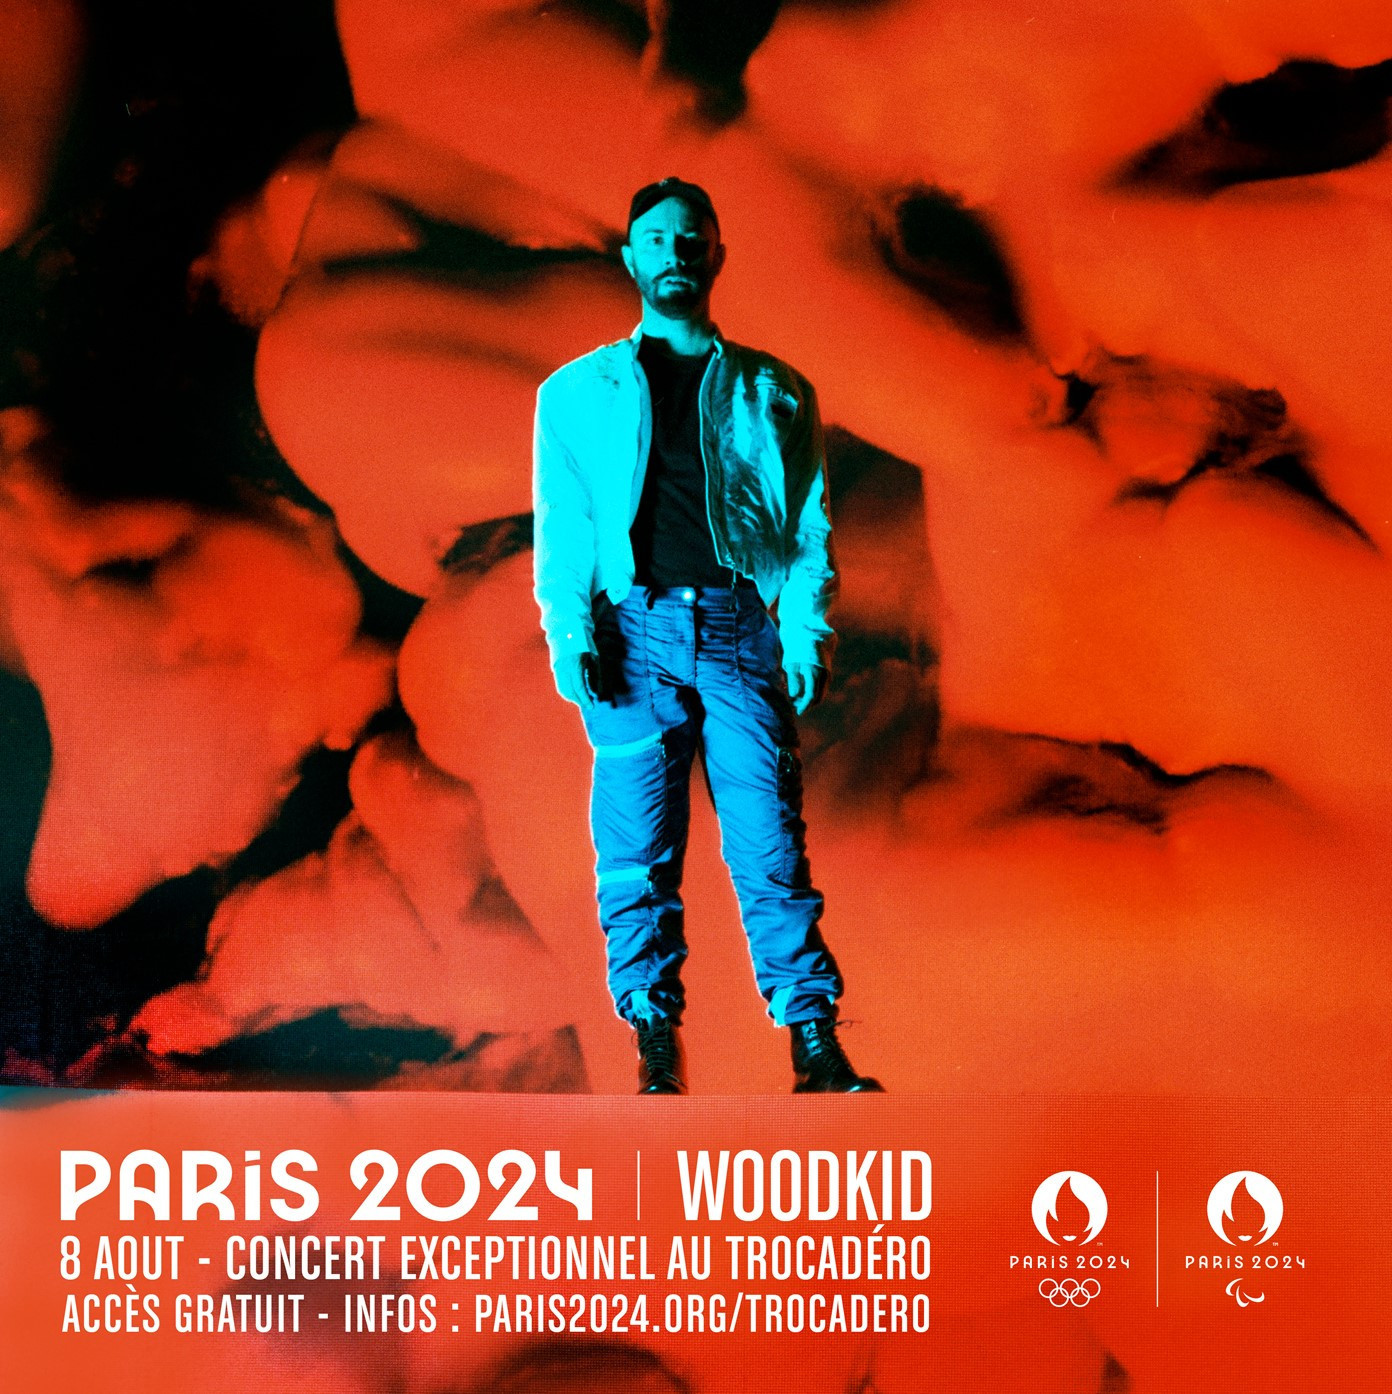 French artist Woodkid to give free concert to celebrate Paris 2024 arrival